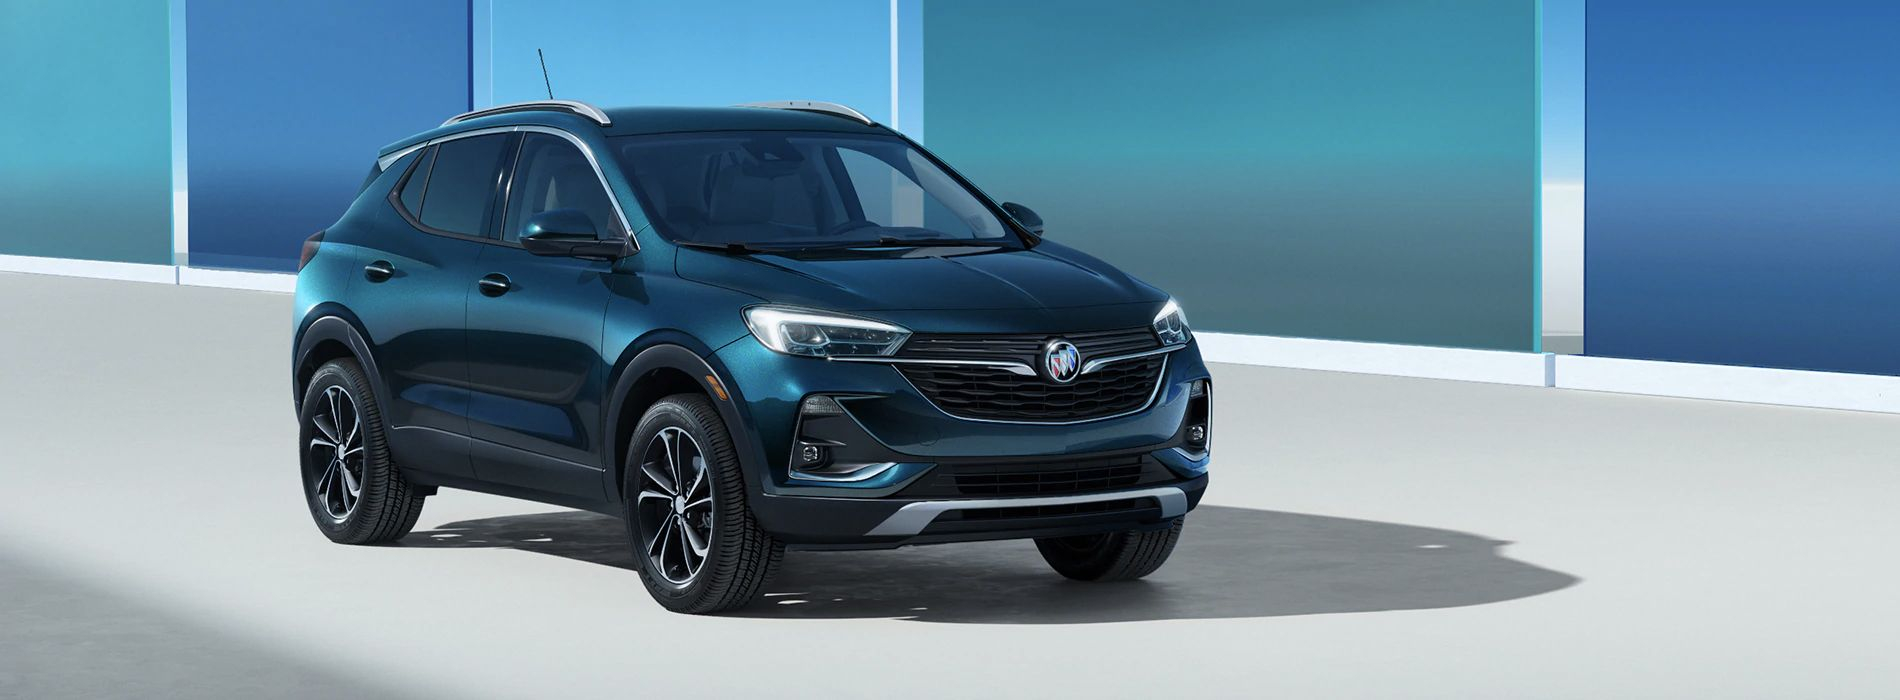 2020 Buick Encore Gx Priced Starting At $25,000 2022 Buick Encore Essence Engine, Awd, Msrp